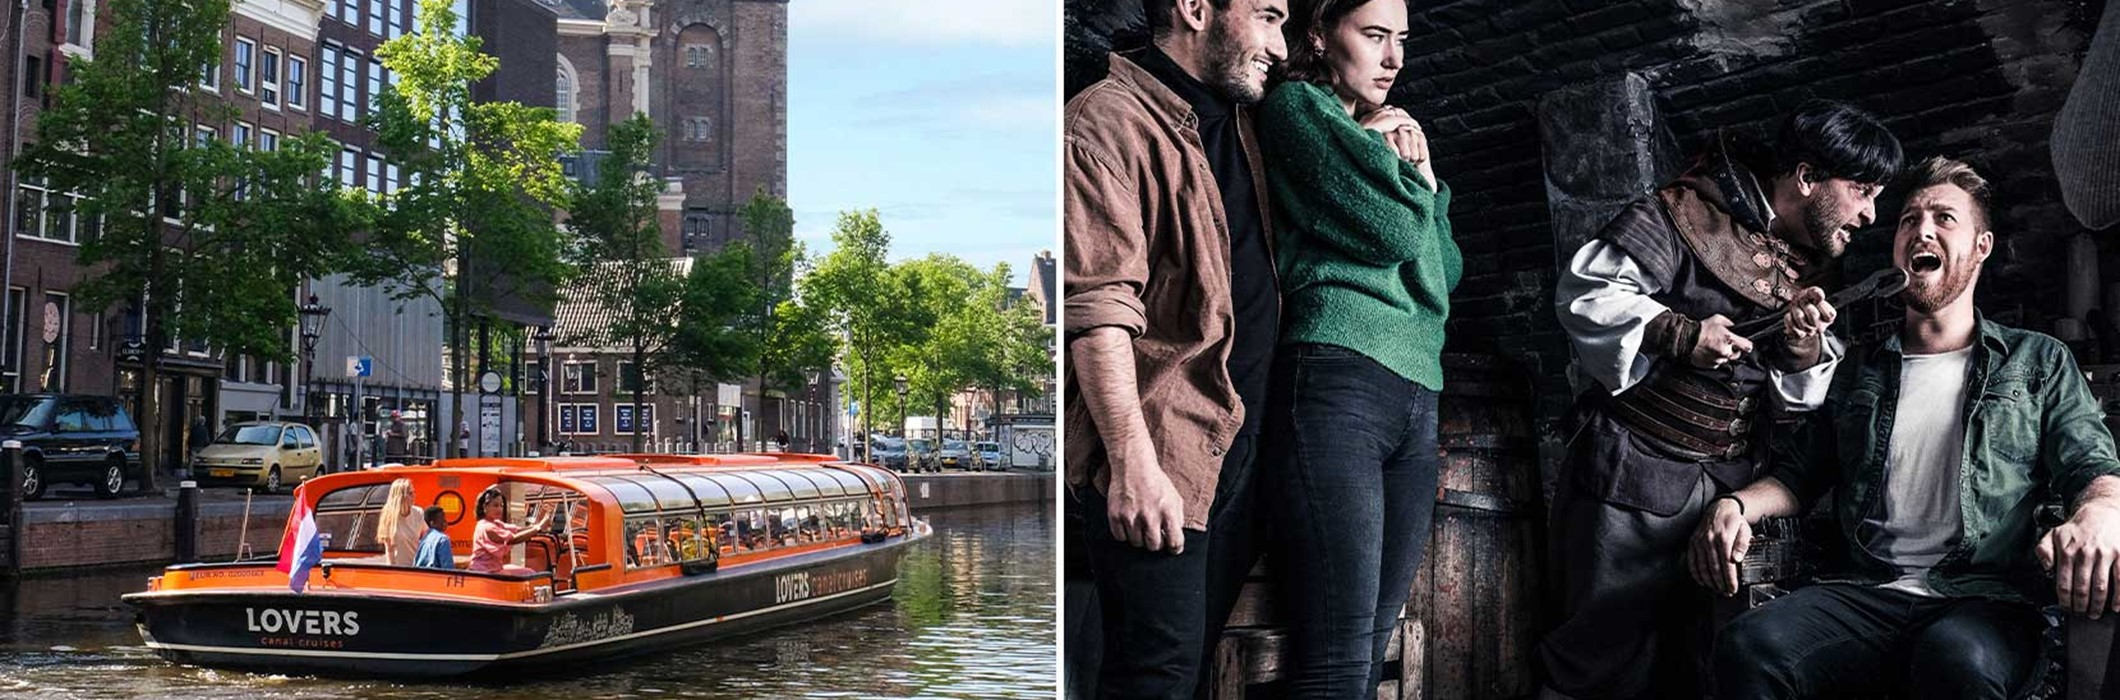 The Amsterdam Dungeon + Amsterdam Canal Cruise